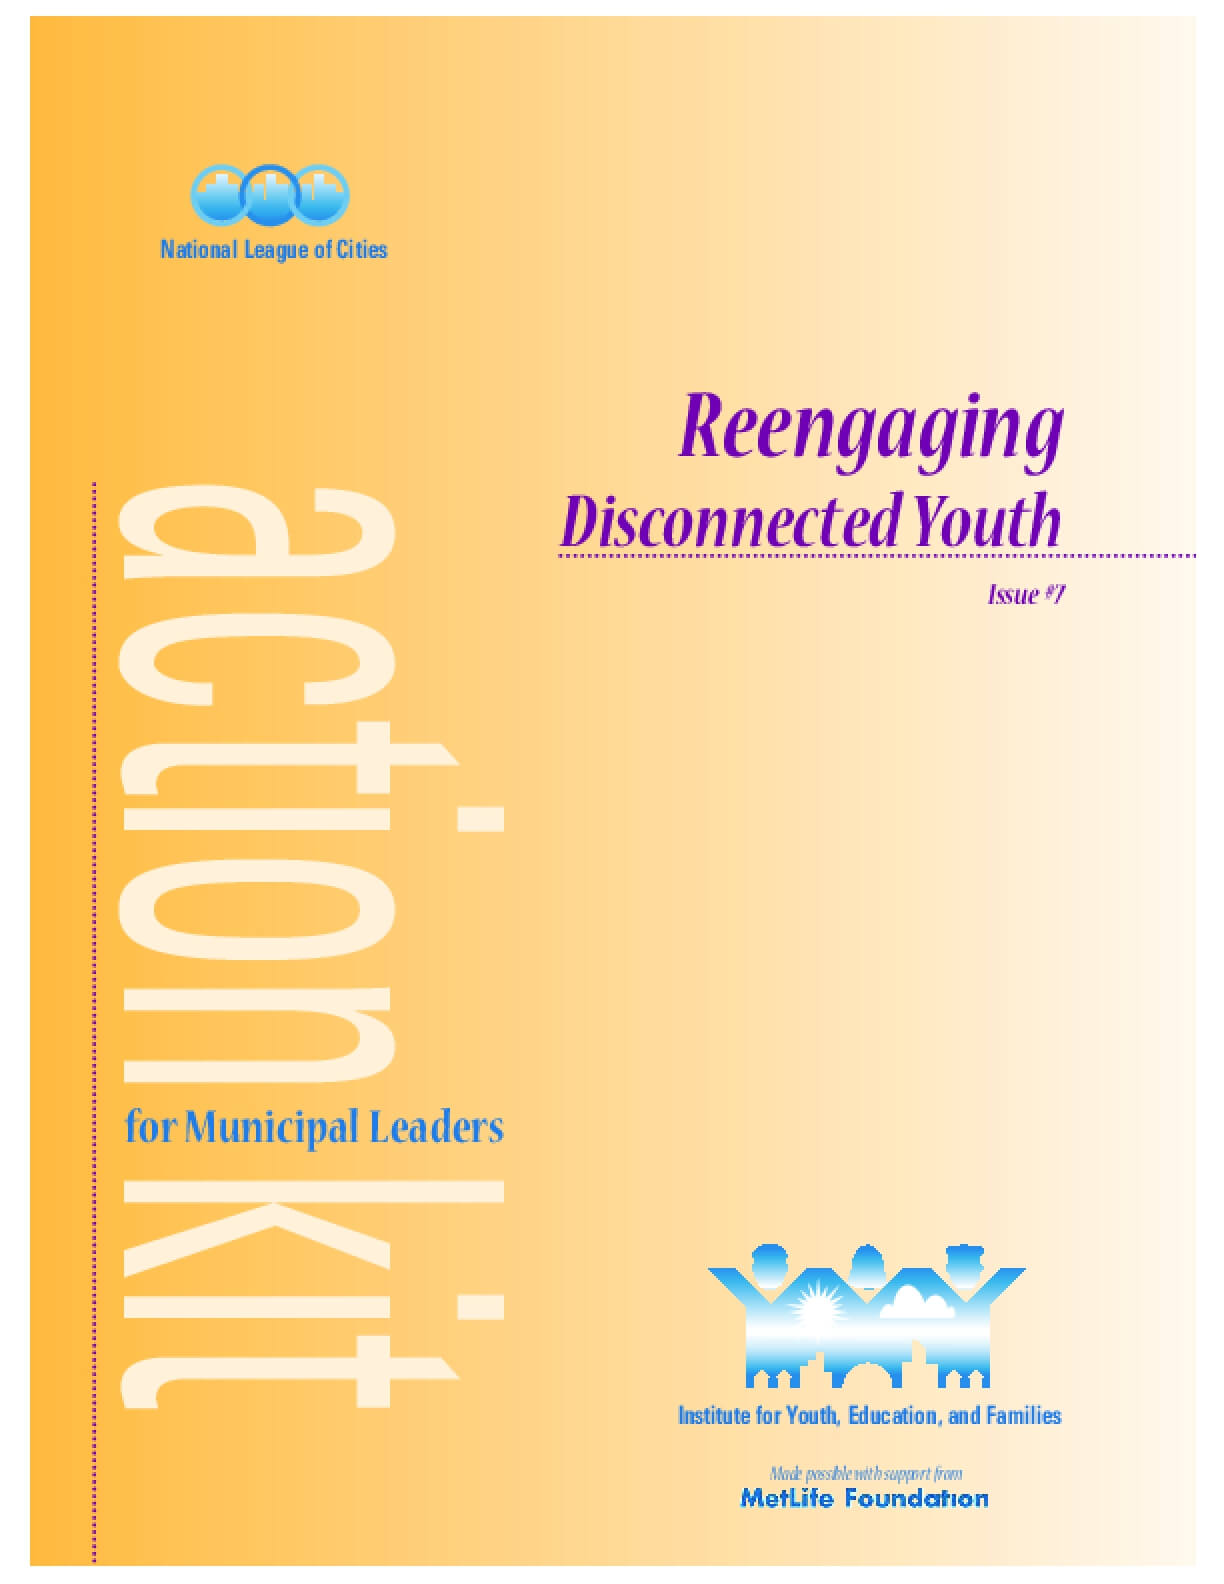 Reengaging Disconnected Youth: Action for Municipal Leaders